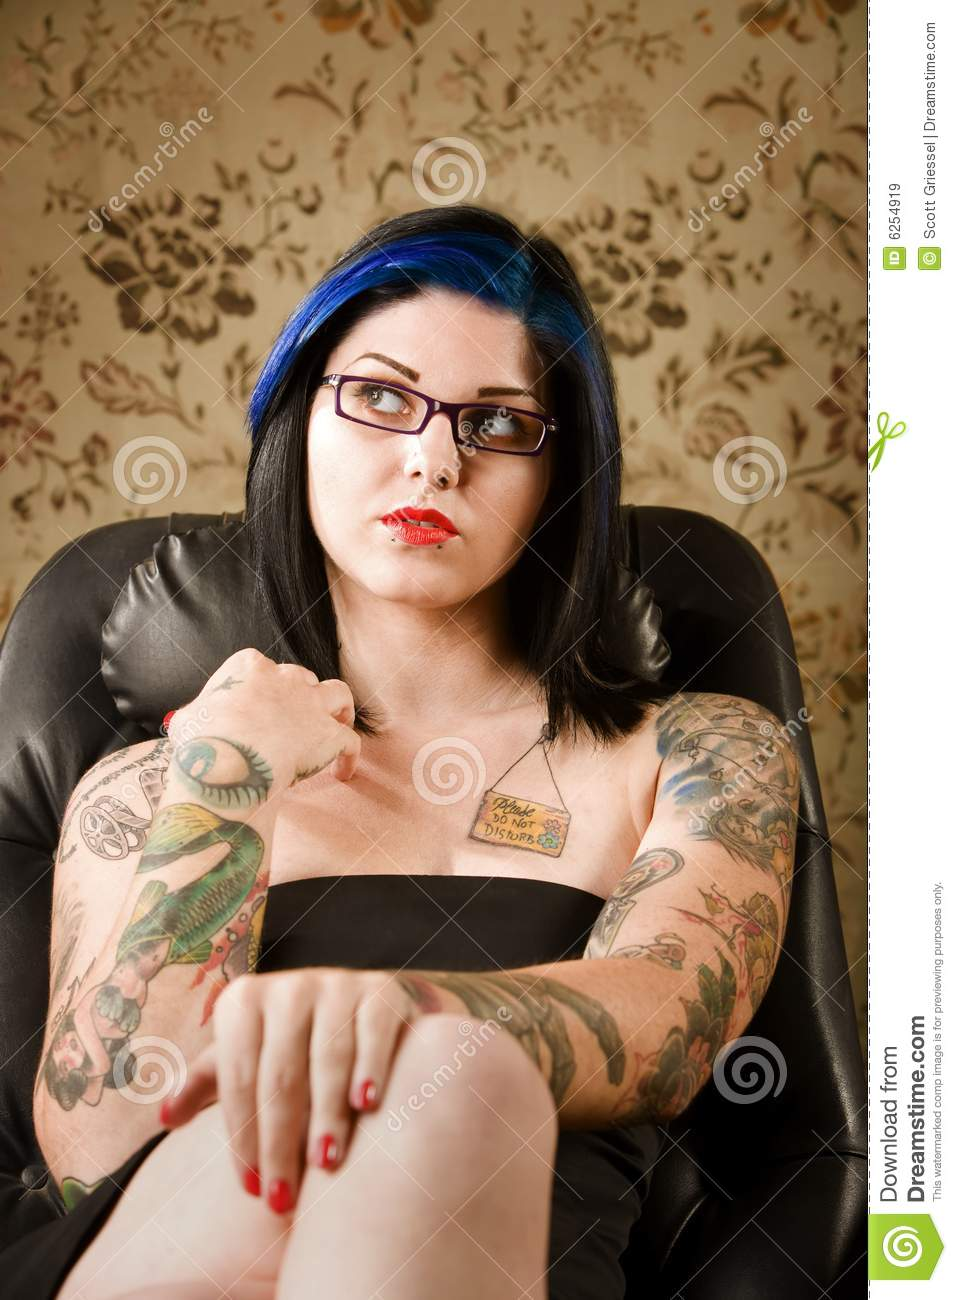 Pretty woman with tattoos in a leather chair stock image for Woman with tattoos